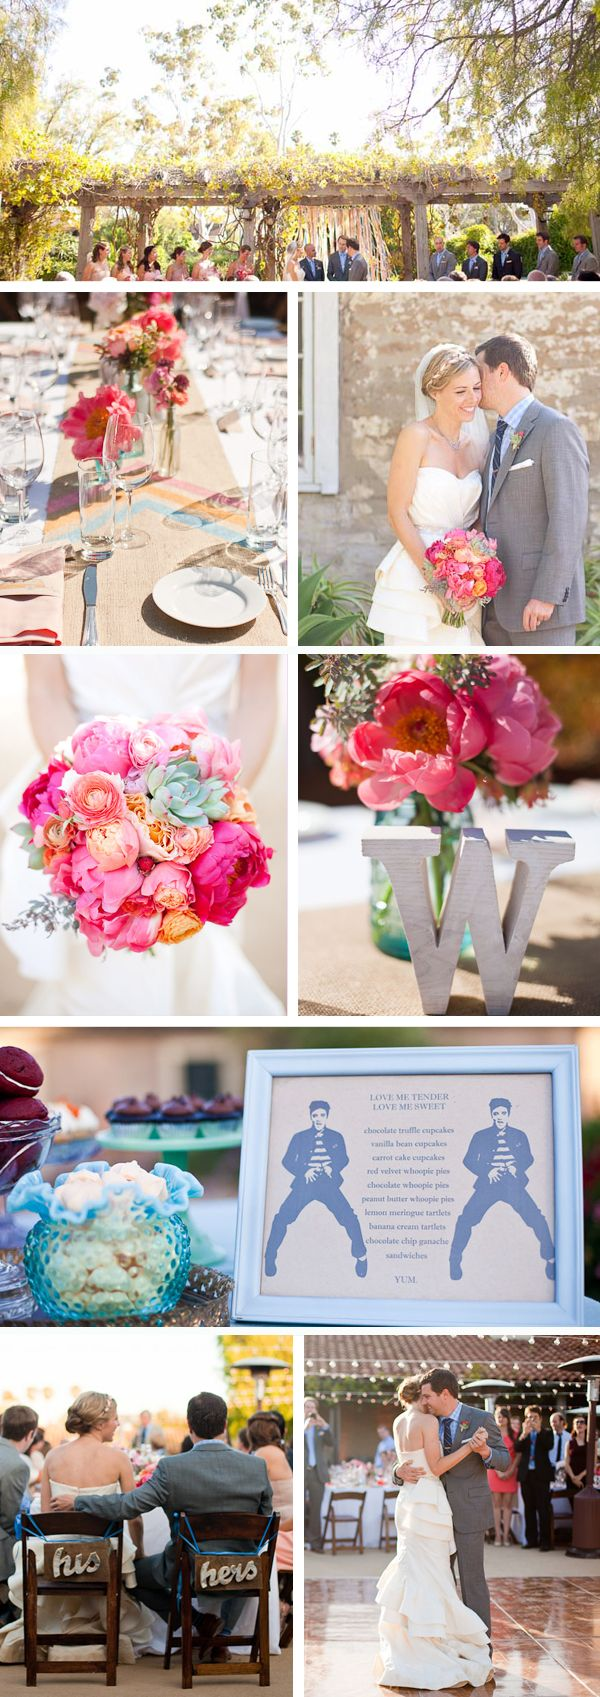 6 reasons why you need a wedding plannerblog post for oh lovely day plannerblog post for oh lovely dayphotos by katie vowels for annie mcelwainplanning by the green ribbon party planning coflowers by twig twine izmirmasajfo